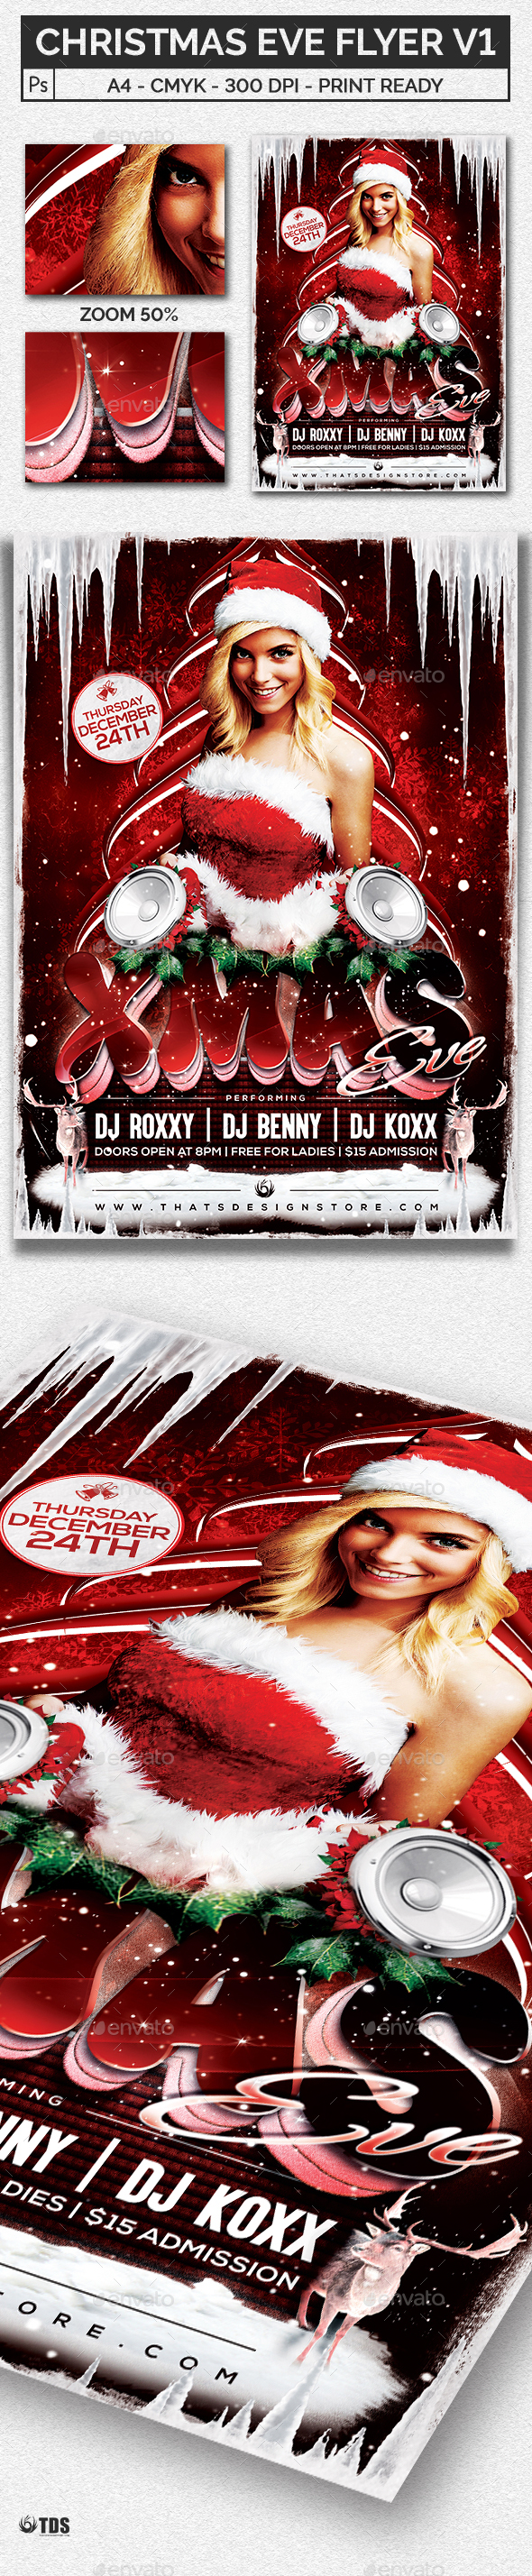 Christmas Eve Flyer Template V1 - Holidays Events